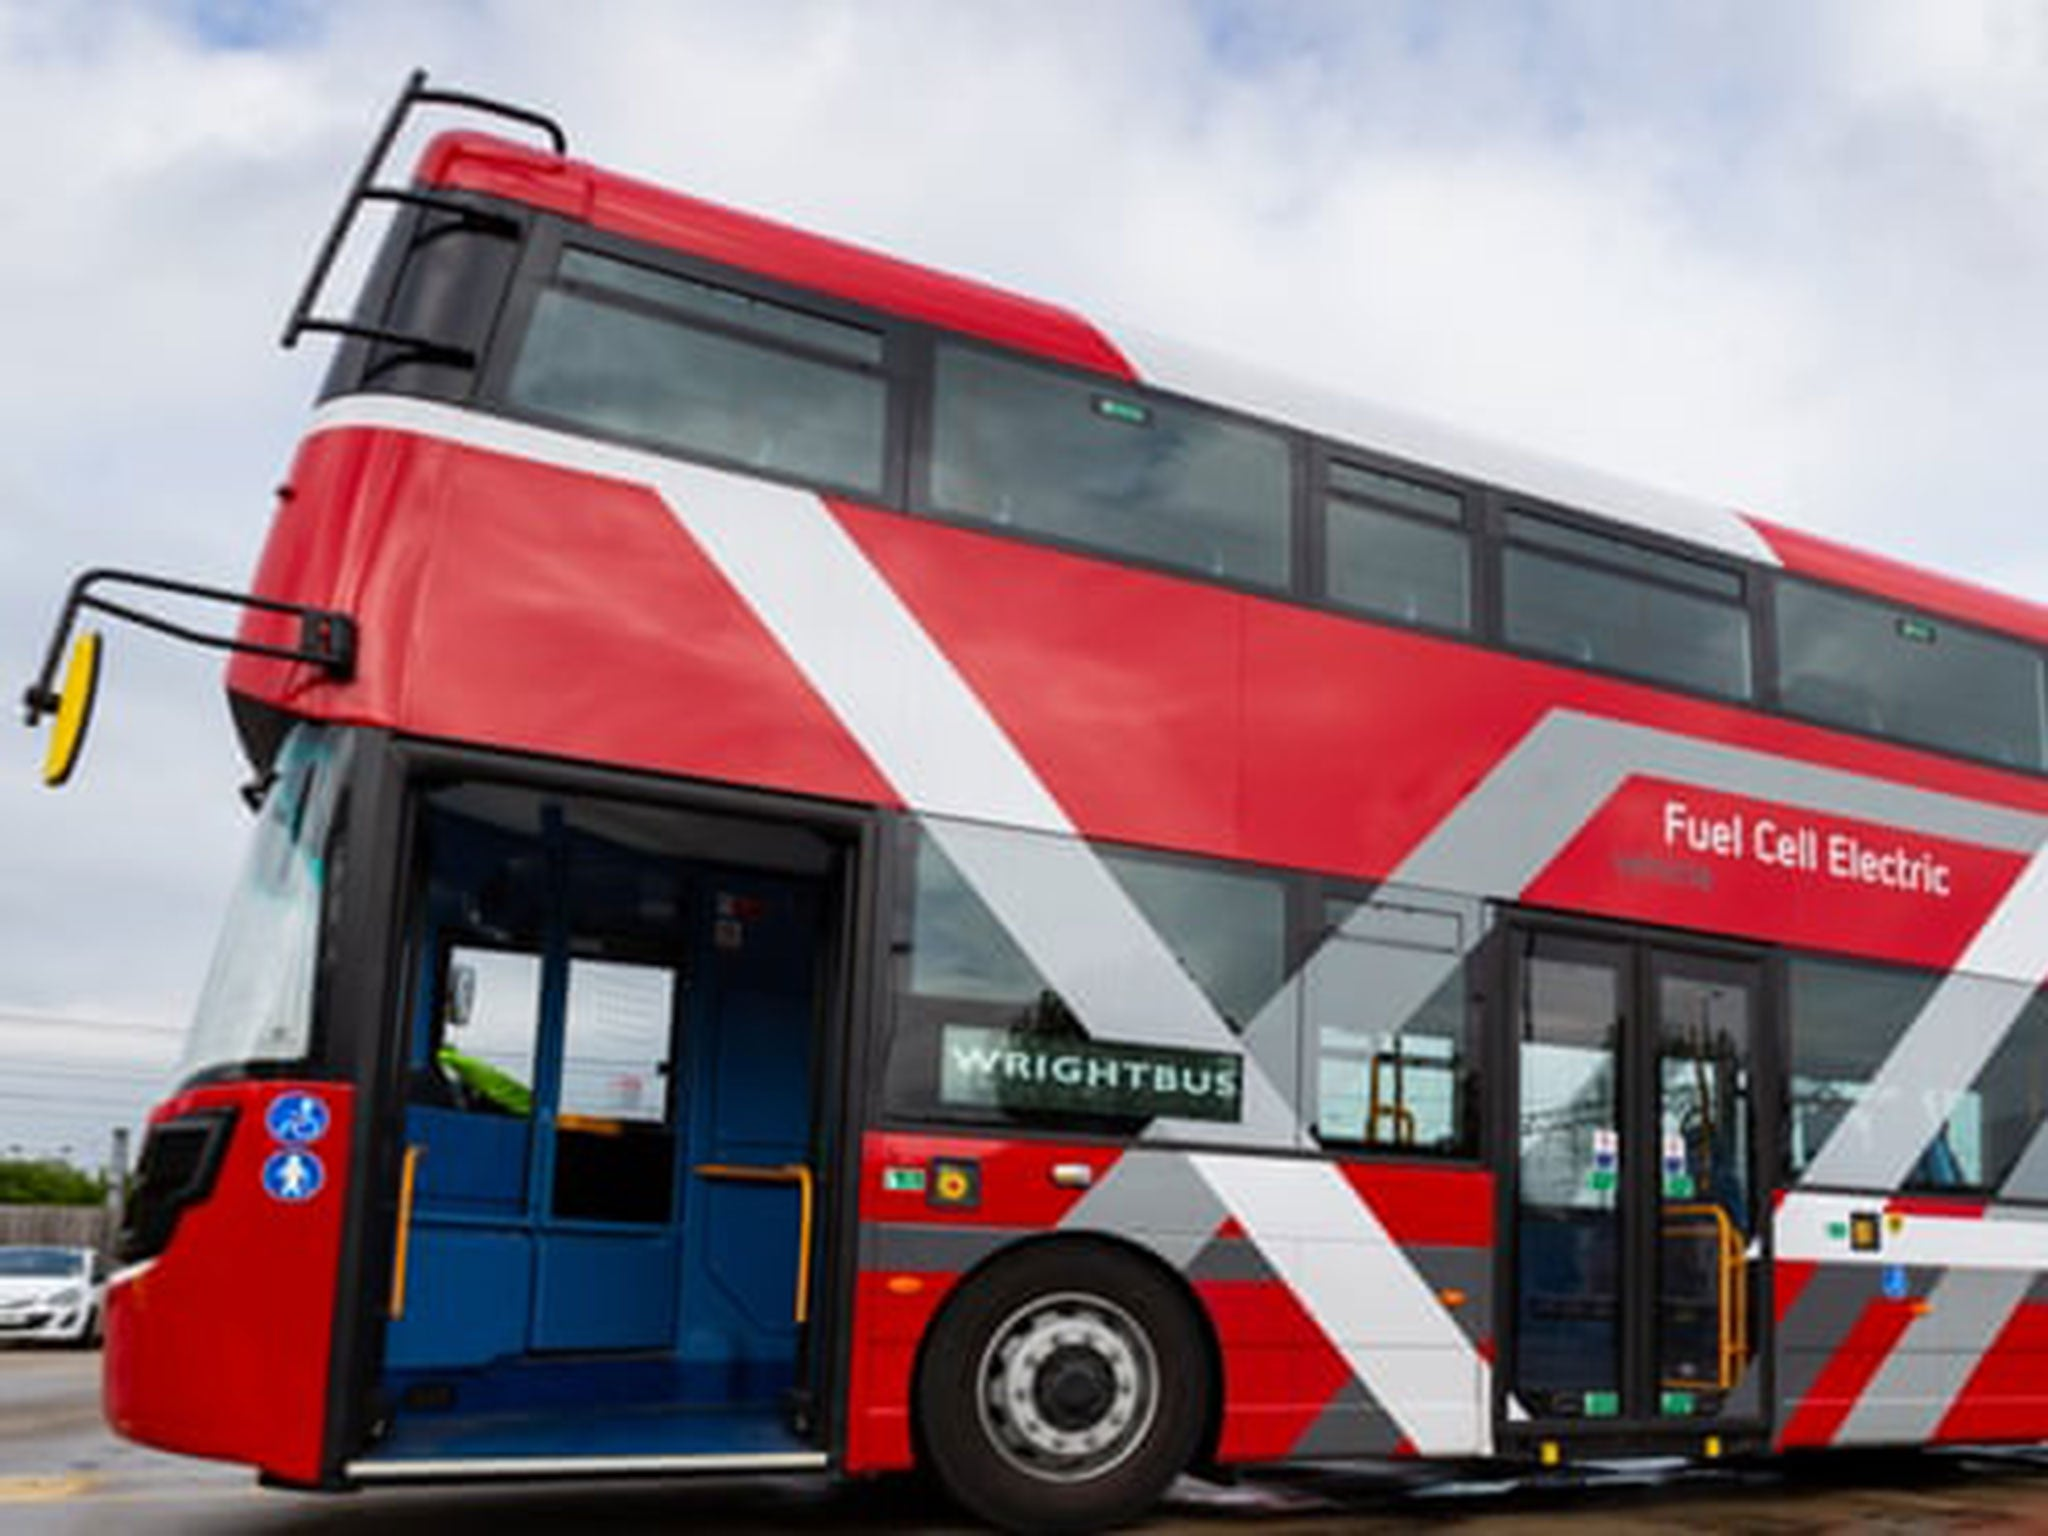 World's first hydrogen double-decker buses coming to London to fight air pollution